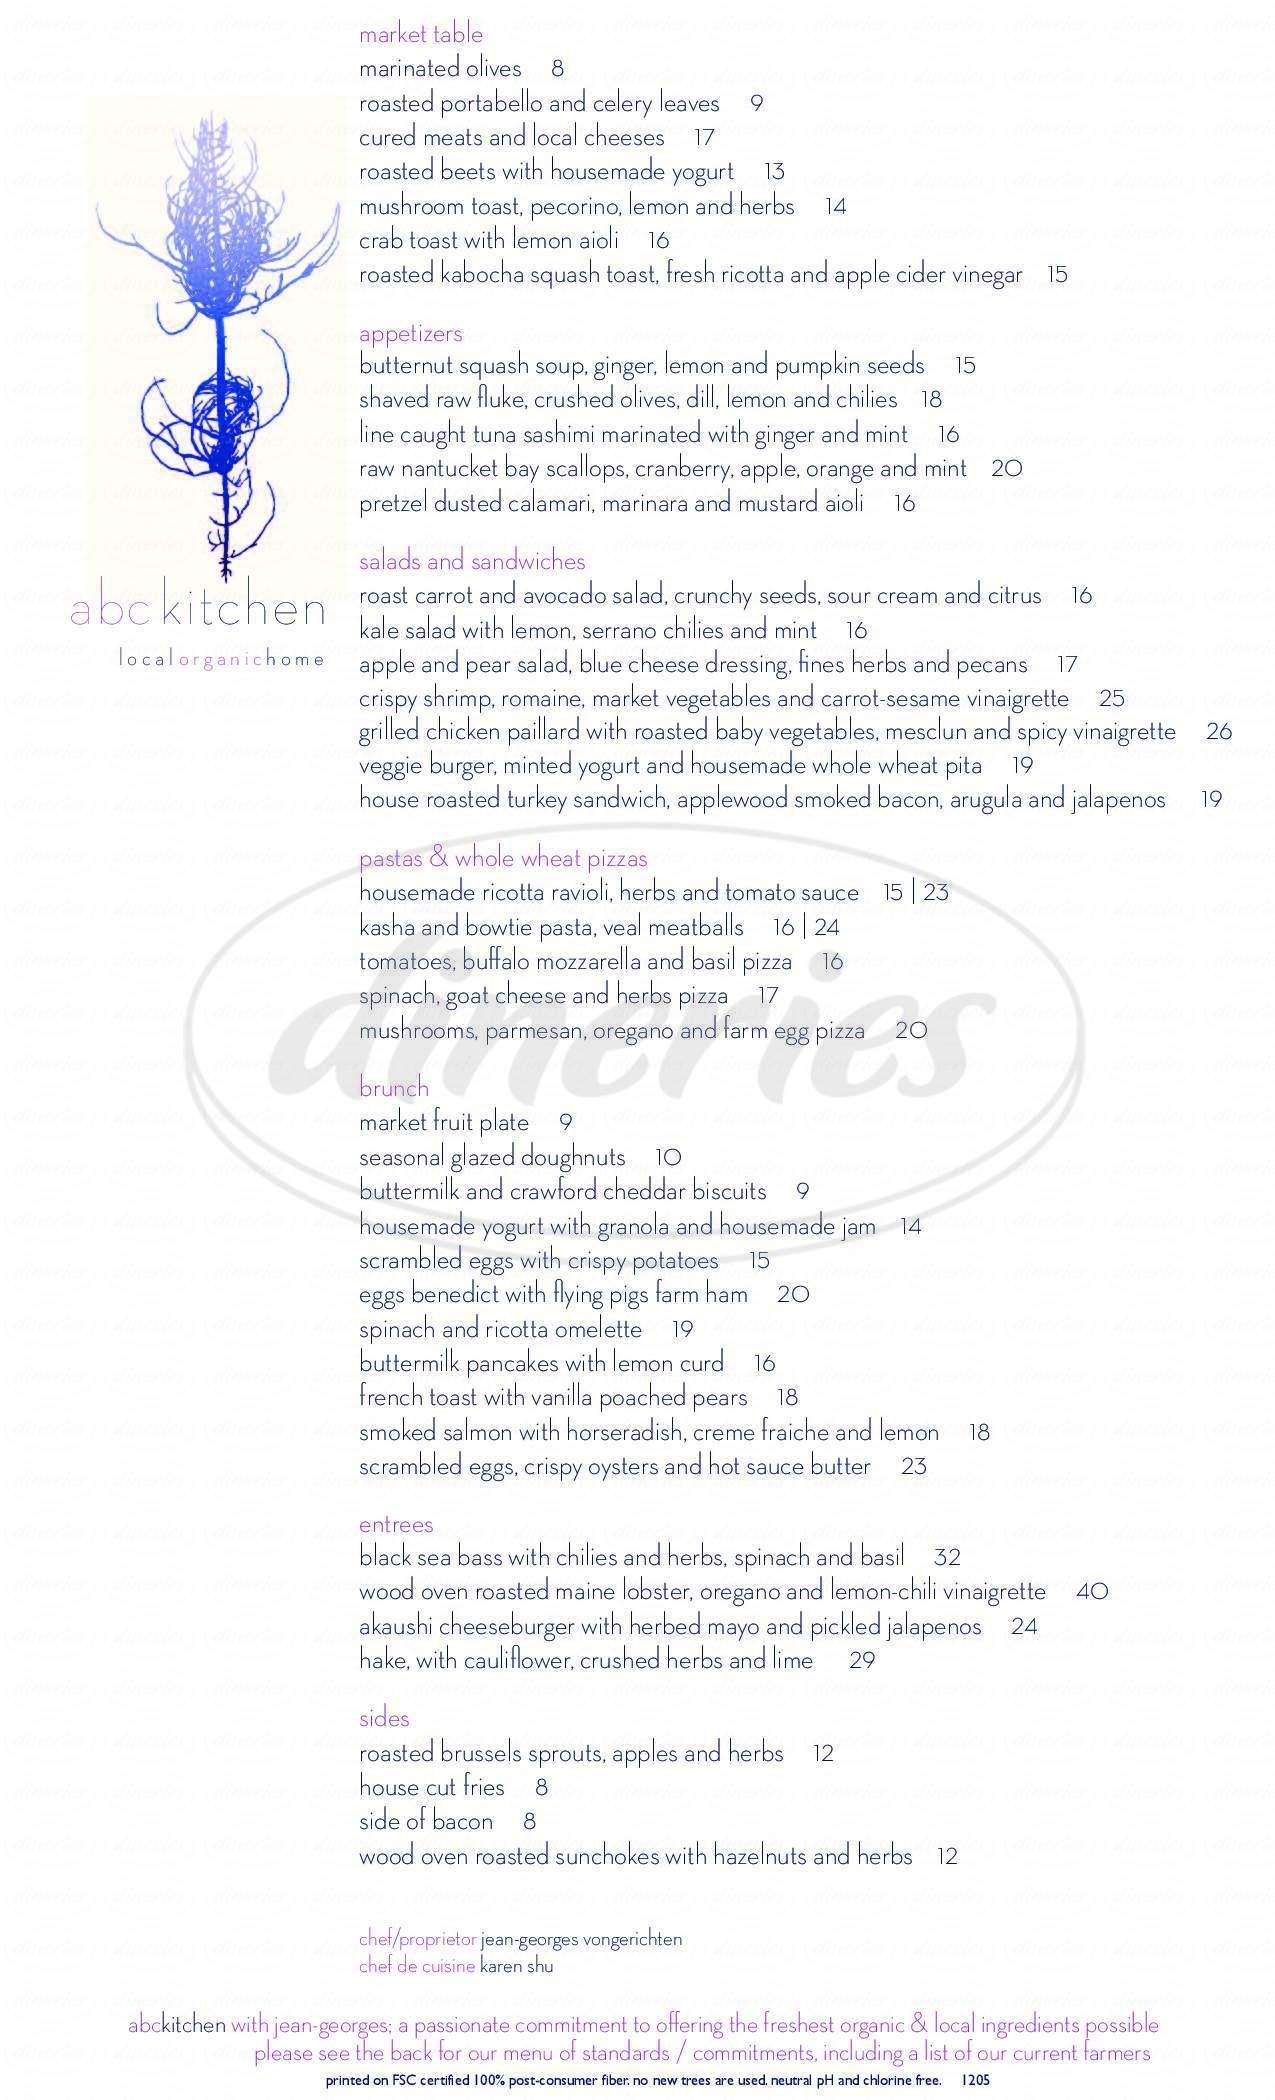 menu for ABC Kitchen